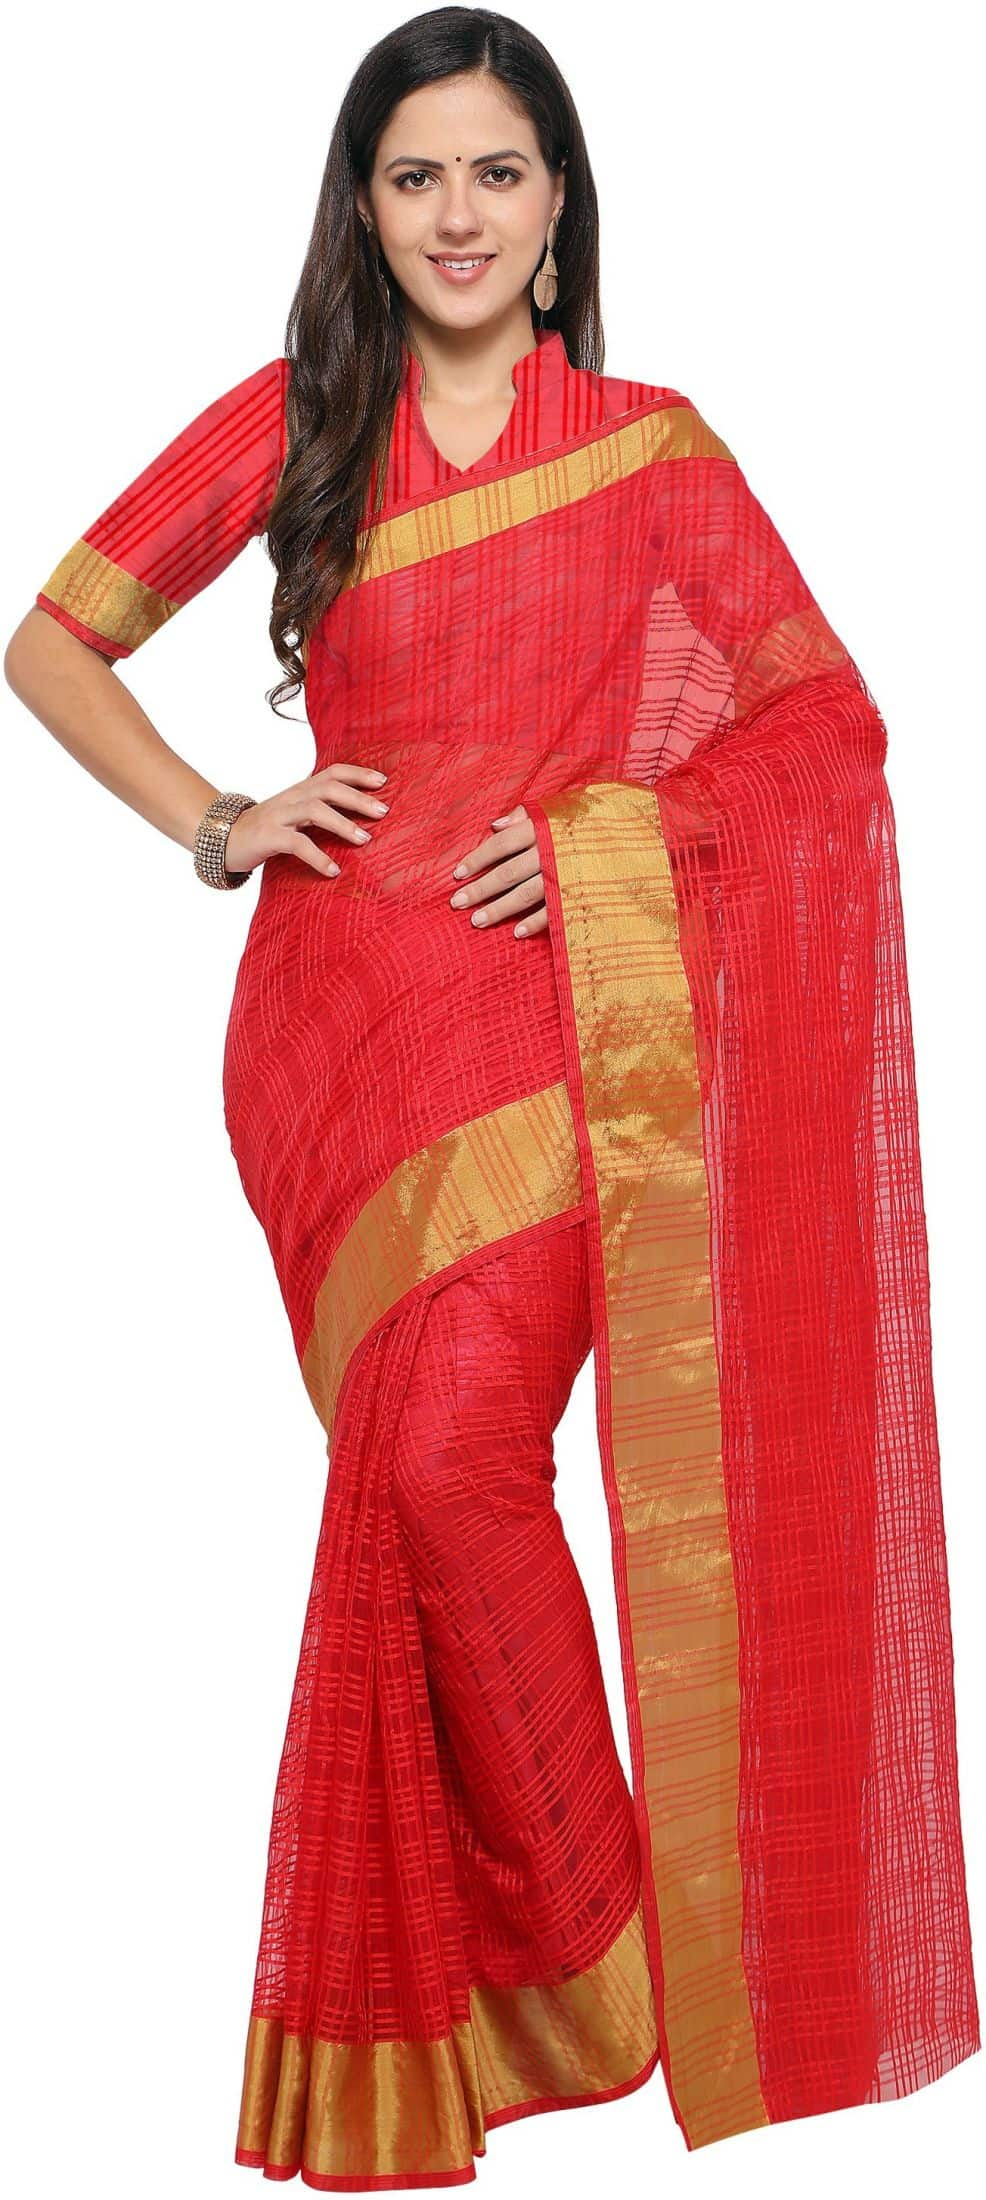 Saree upto 94% discount starting from Rs.194